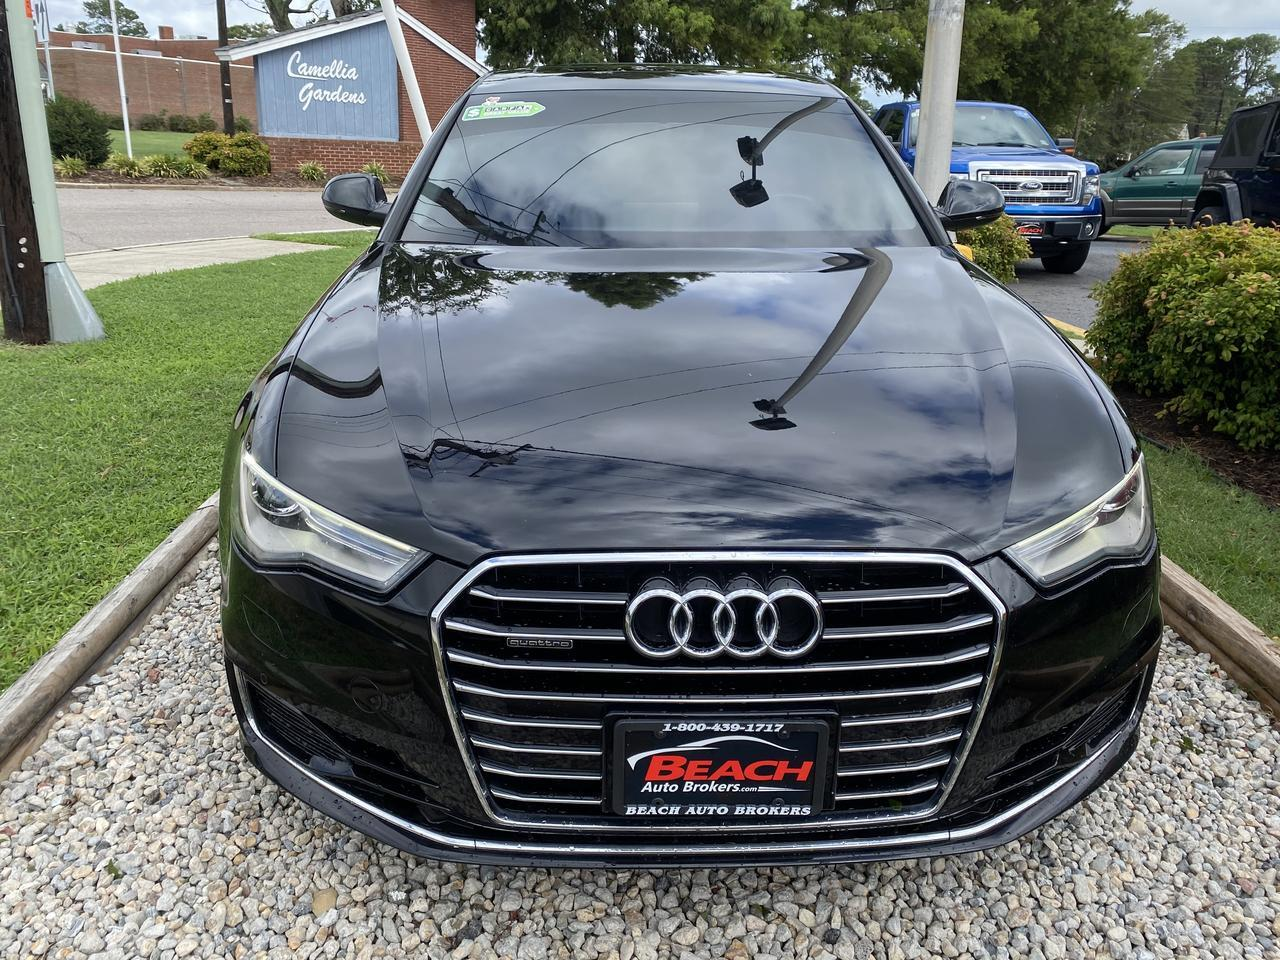 2016 AUDI A6 QUATTRO PREMIUM +, WARRANTY, LEATHER, HEATED/COOLED SEATS, NAV, BOSE SOUND, BACKUP CAM, SUNROOF! Norfolk VA